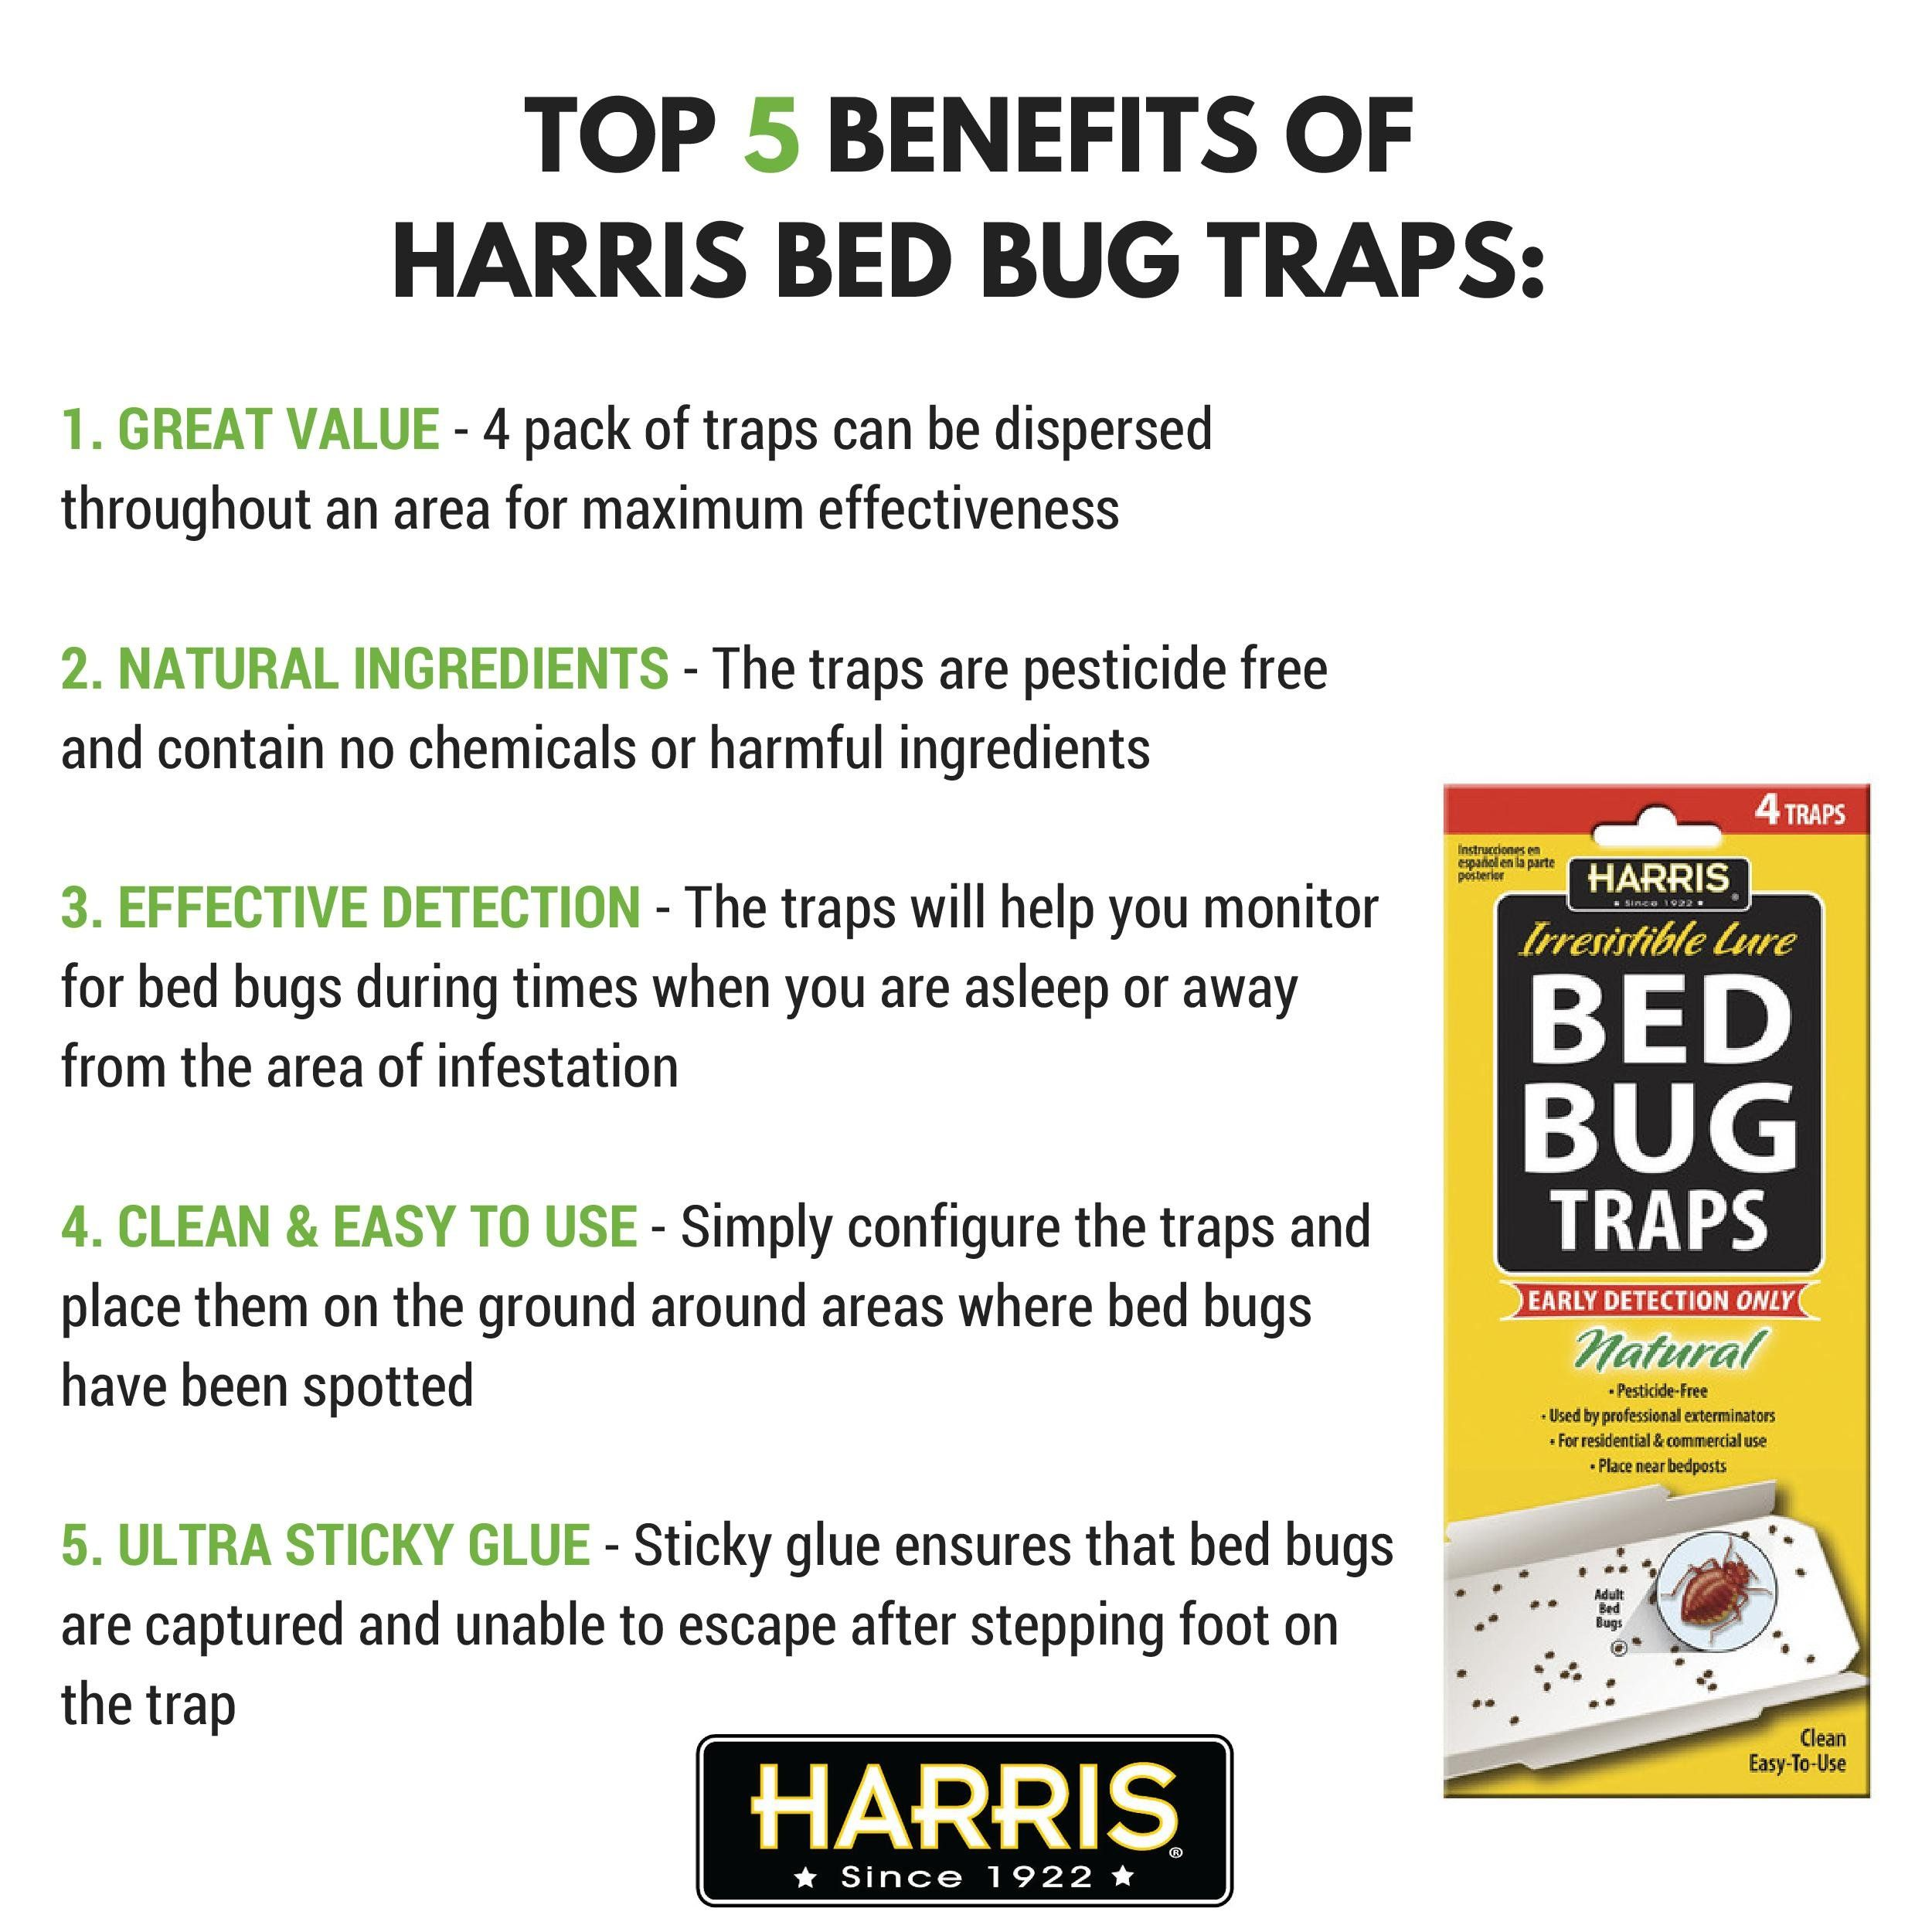 Harris bed bug early detection glue traps 4pack want to